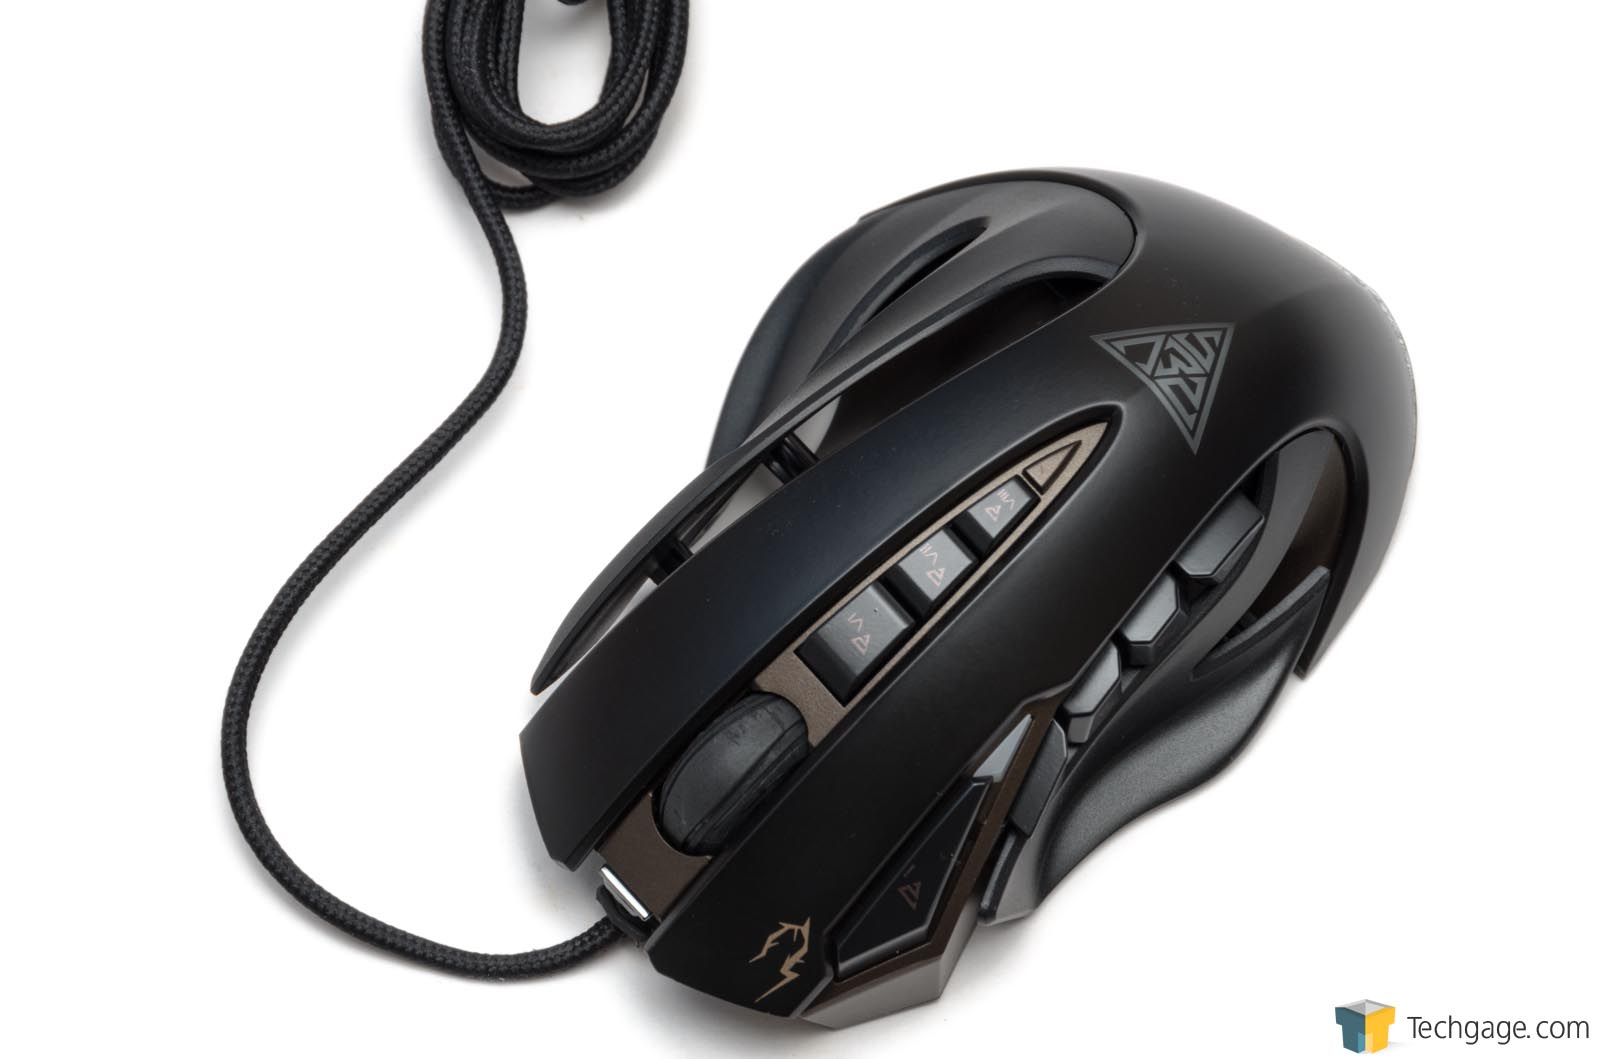 Gamdias Zeus Laser Gaming Mouse Review Techgage P1 05 Top